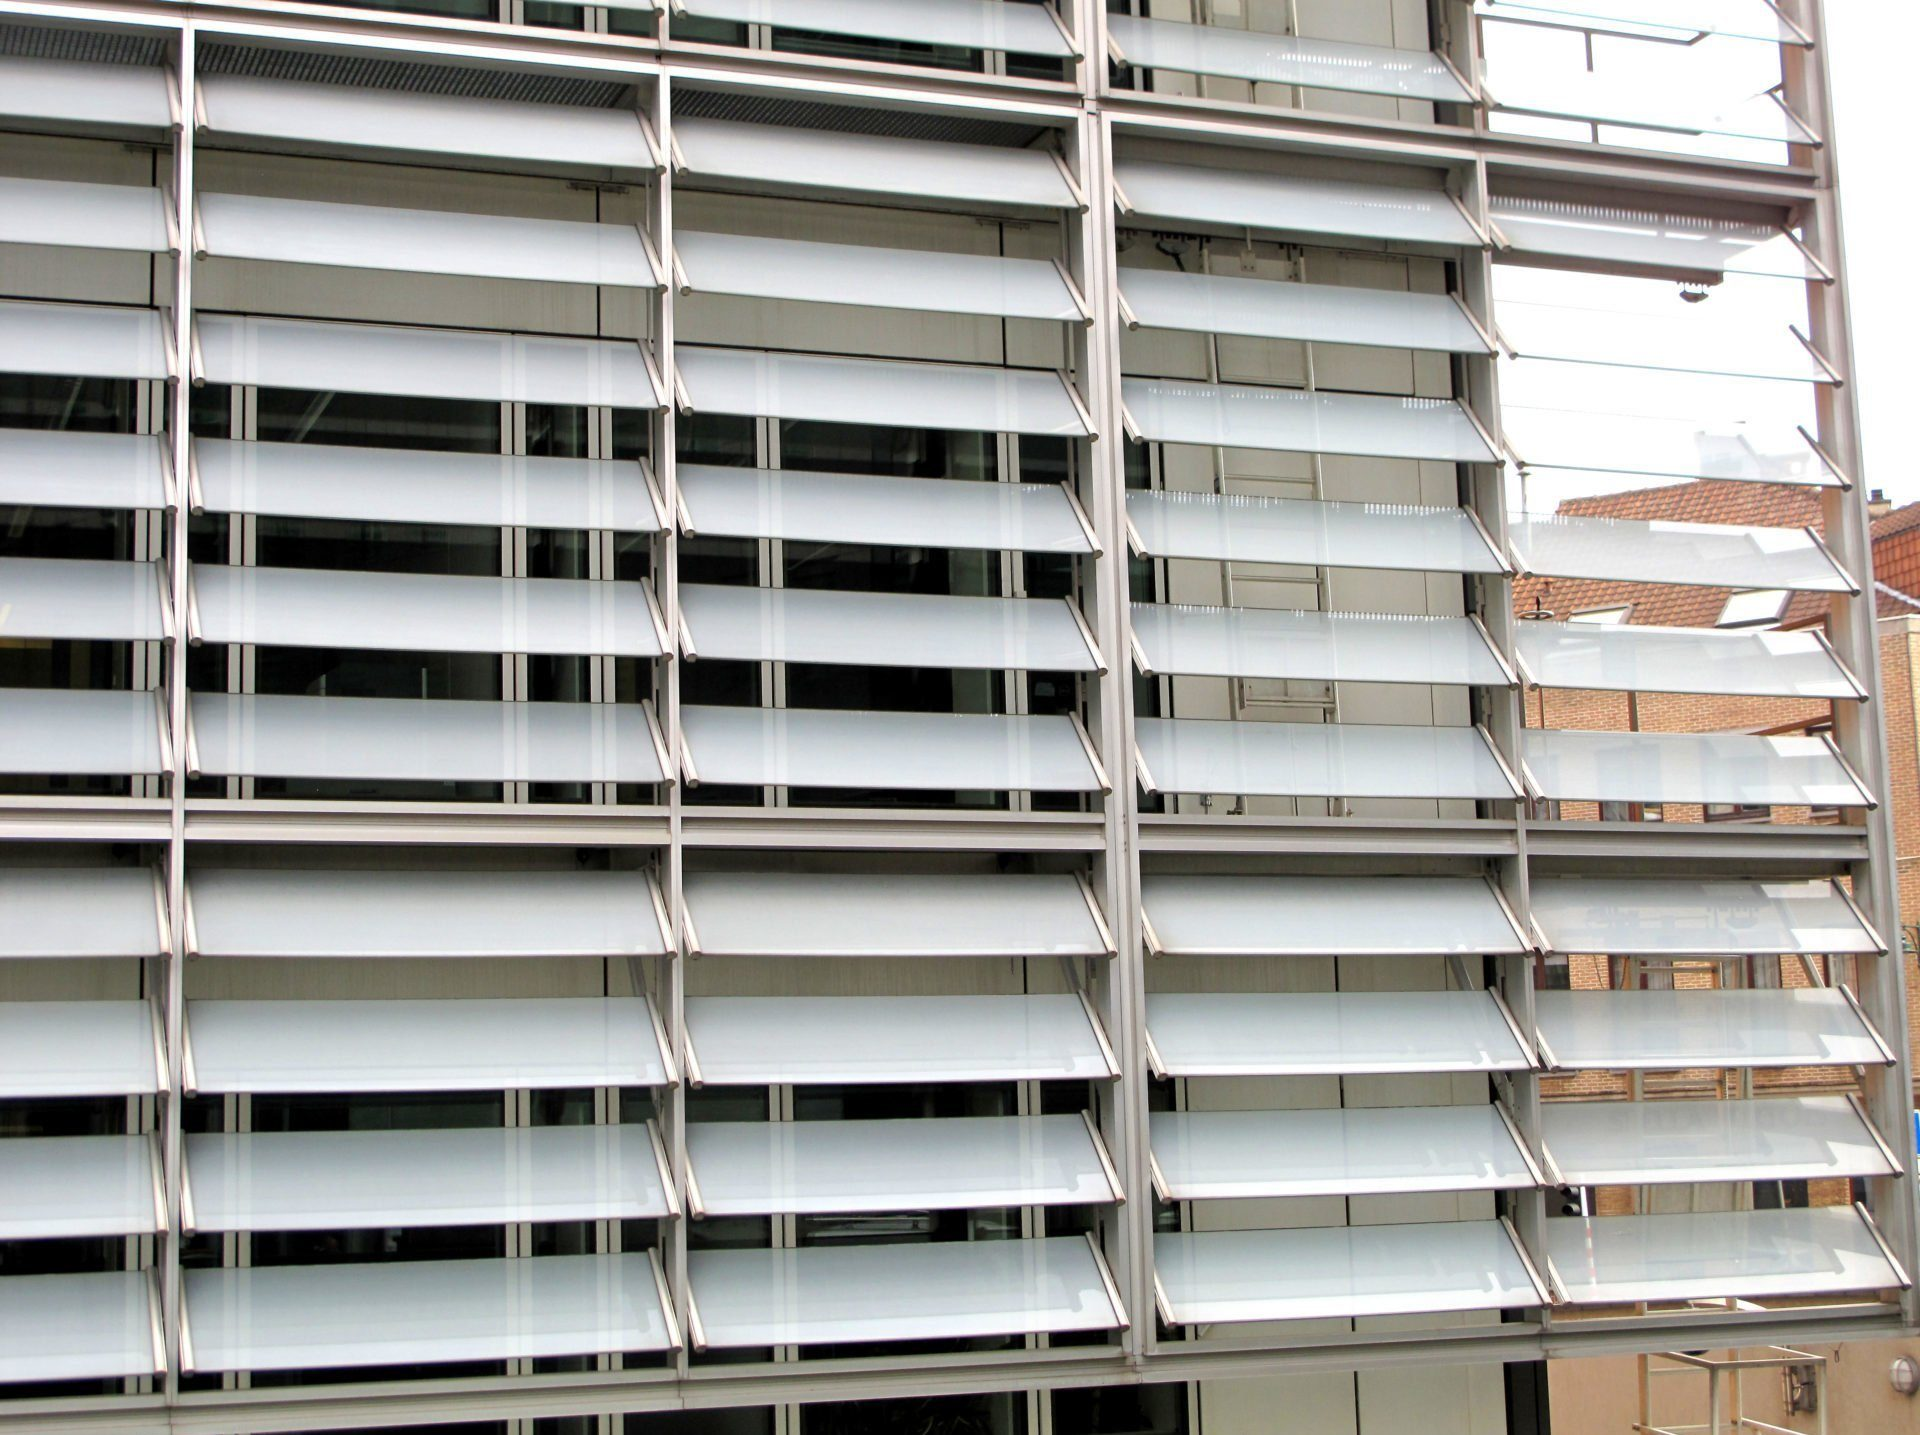 One way vision glass at the berlaymont the european commission brussels